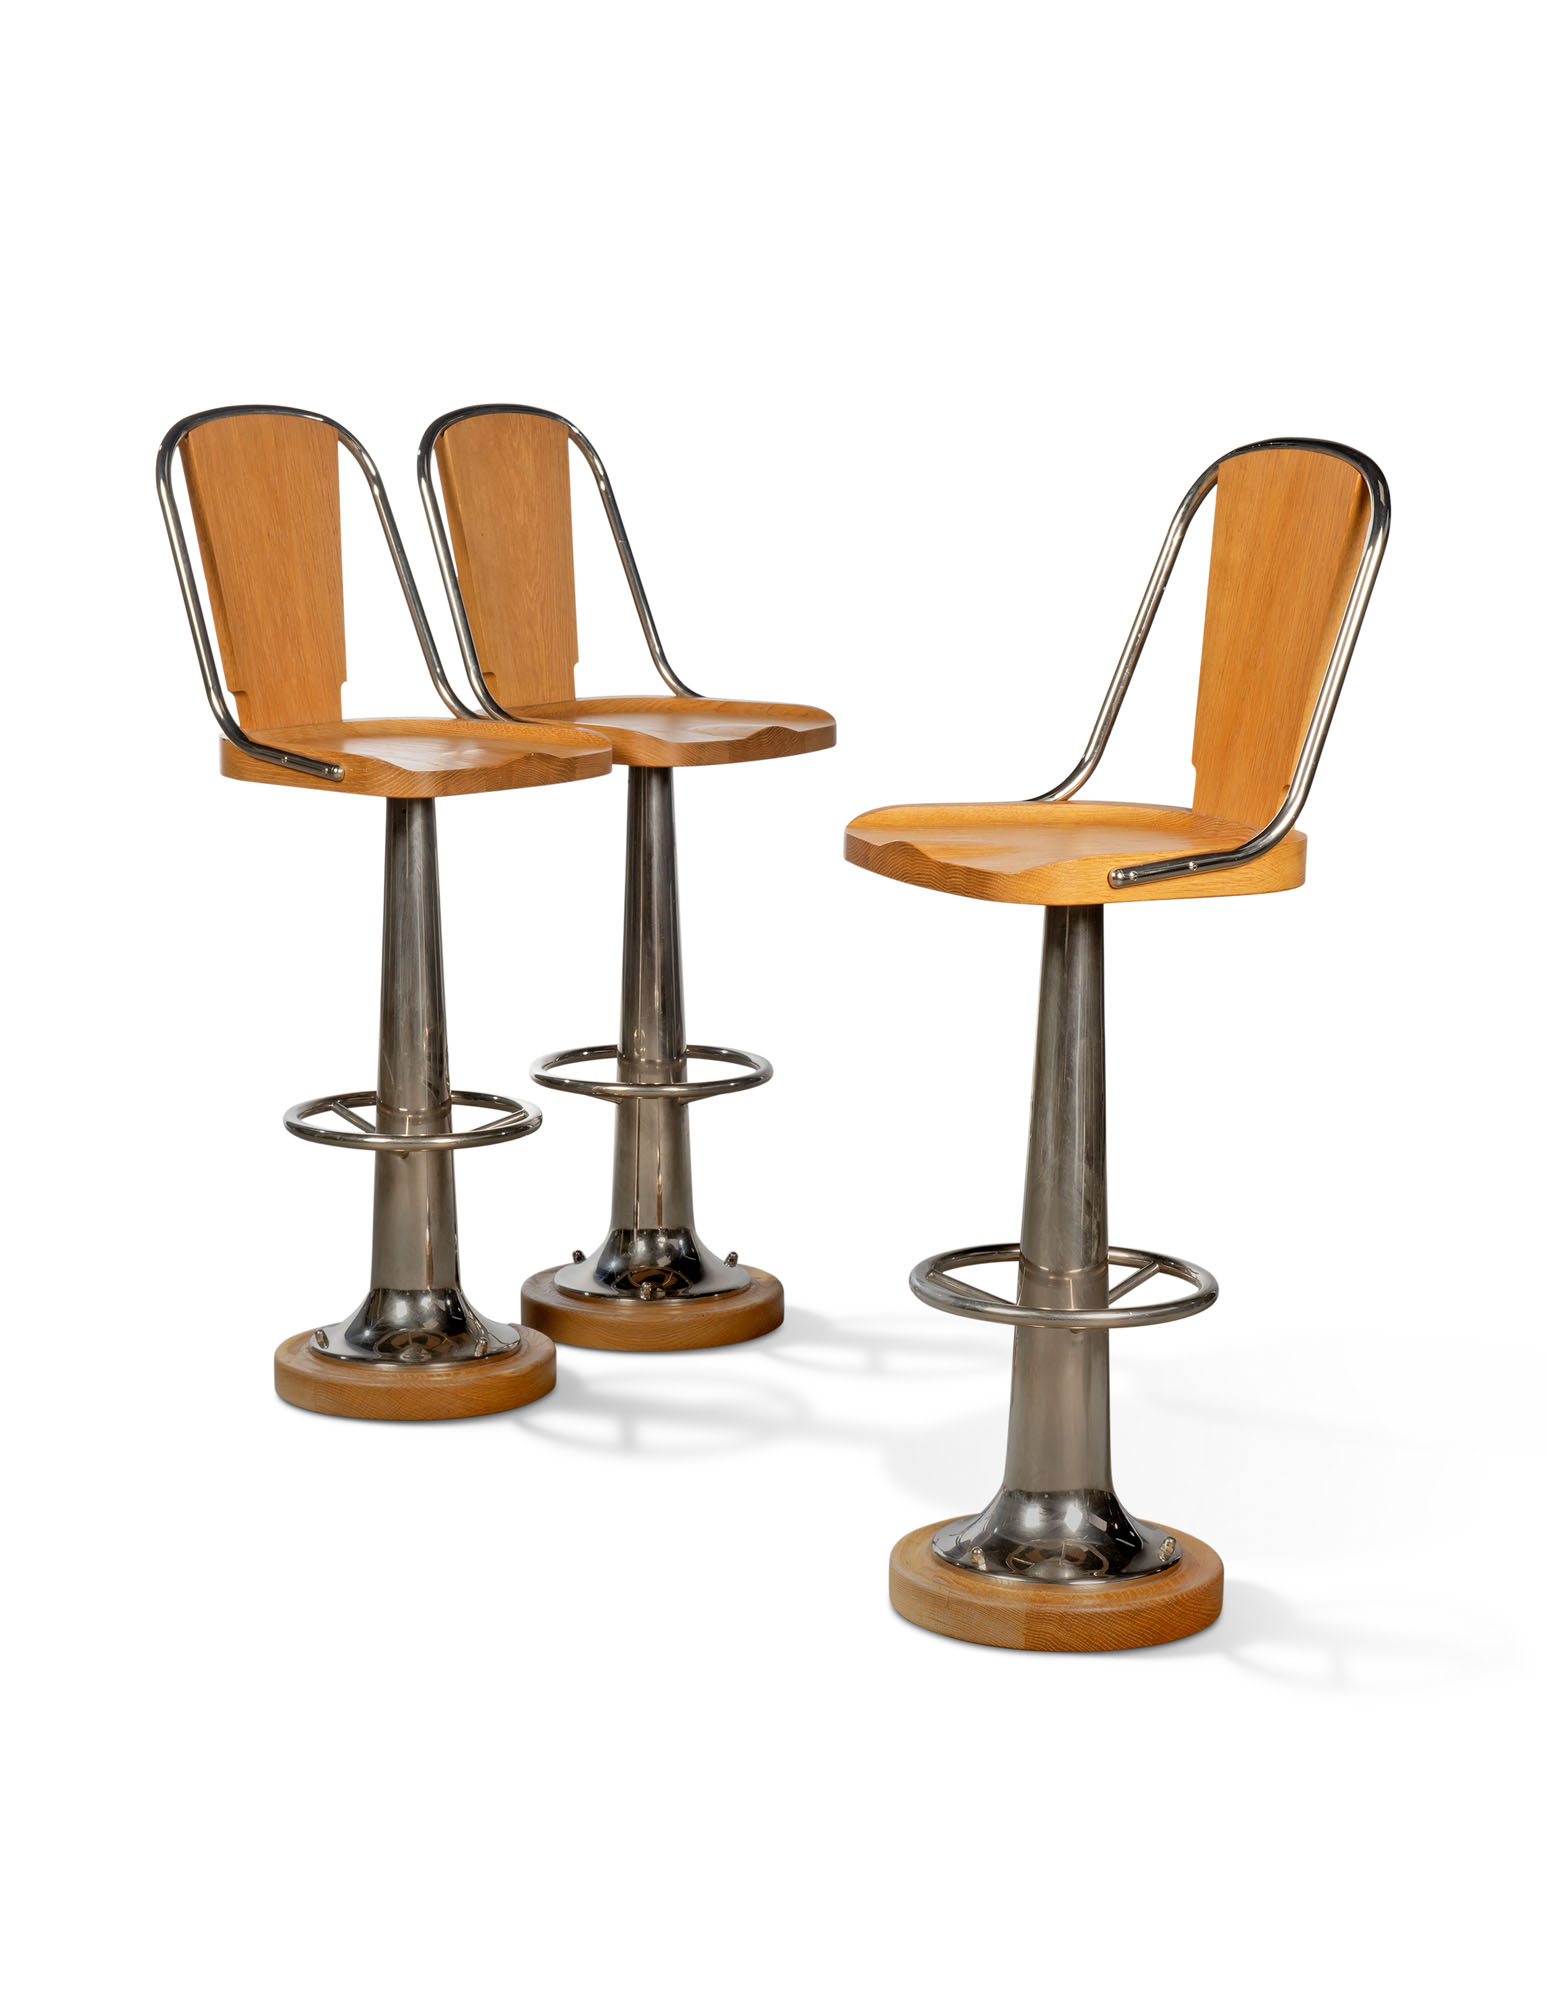 A SET OF THREE NICKEL-PLATED AND OAK 'YACHT BAR STOOLS'